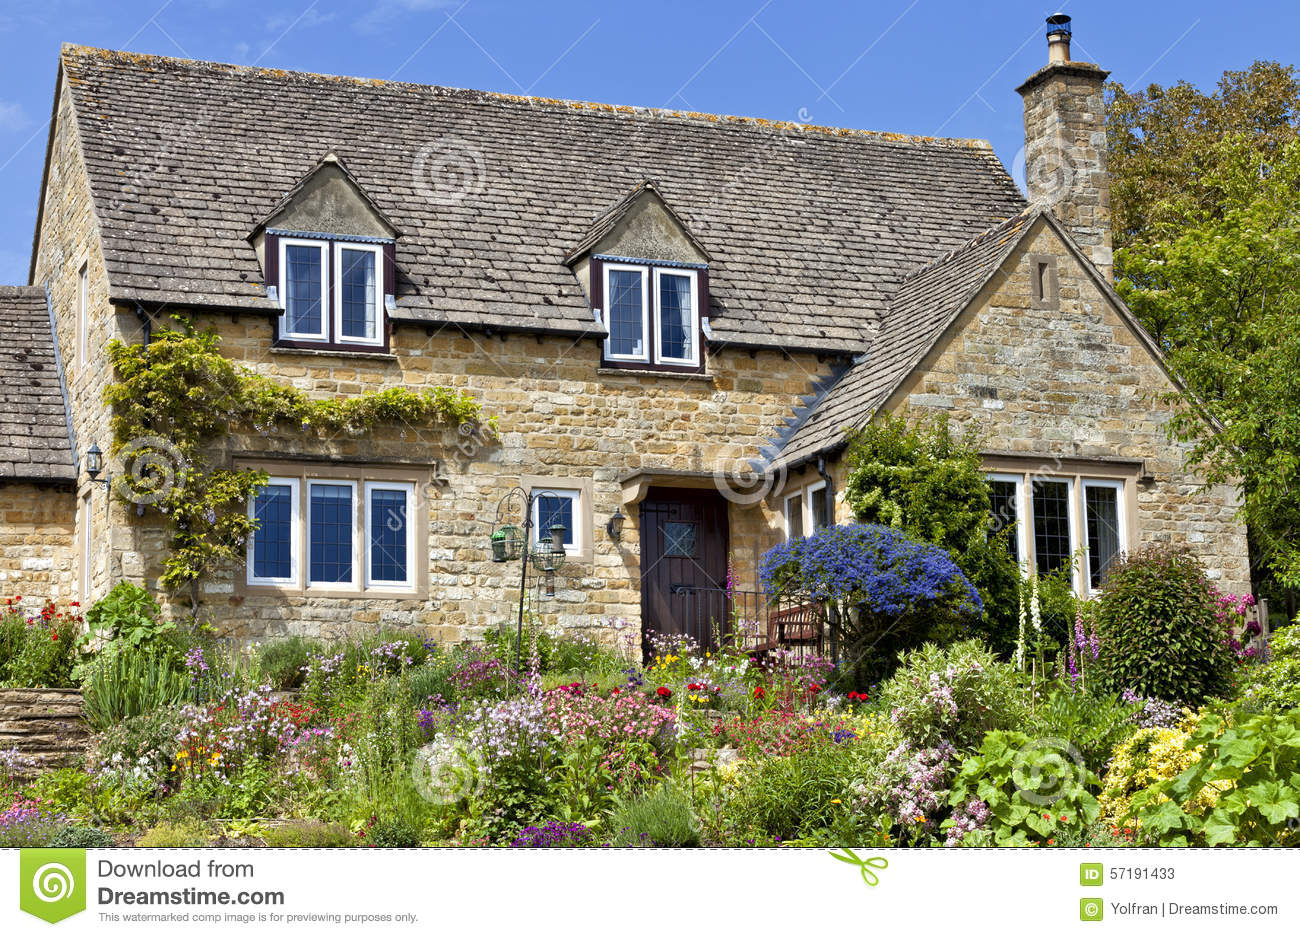 English cotswolds cottage with flowering summer garden stock image image of trees country - English cottage ...